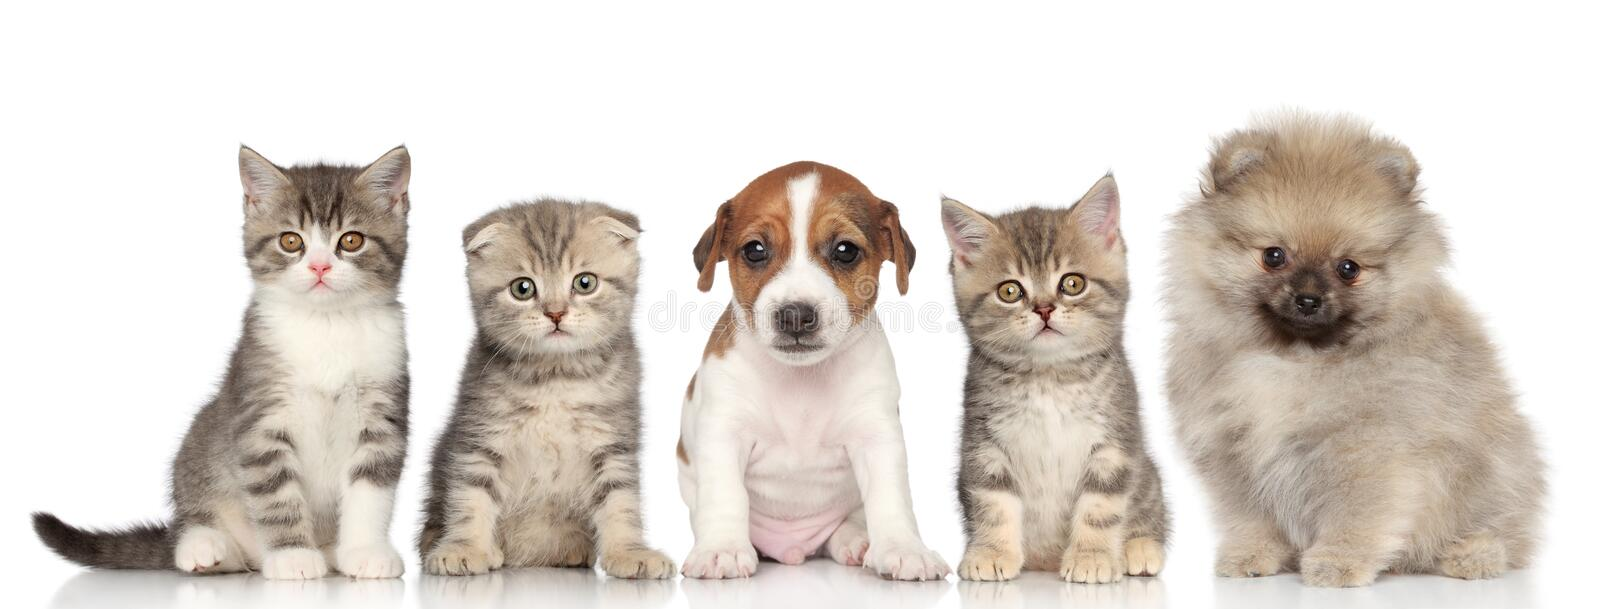 Group of kittens and puppies royalty free stock image